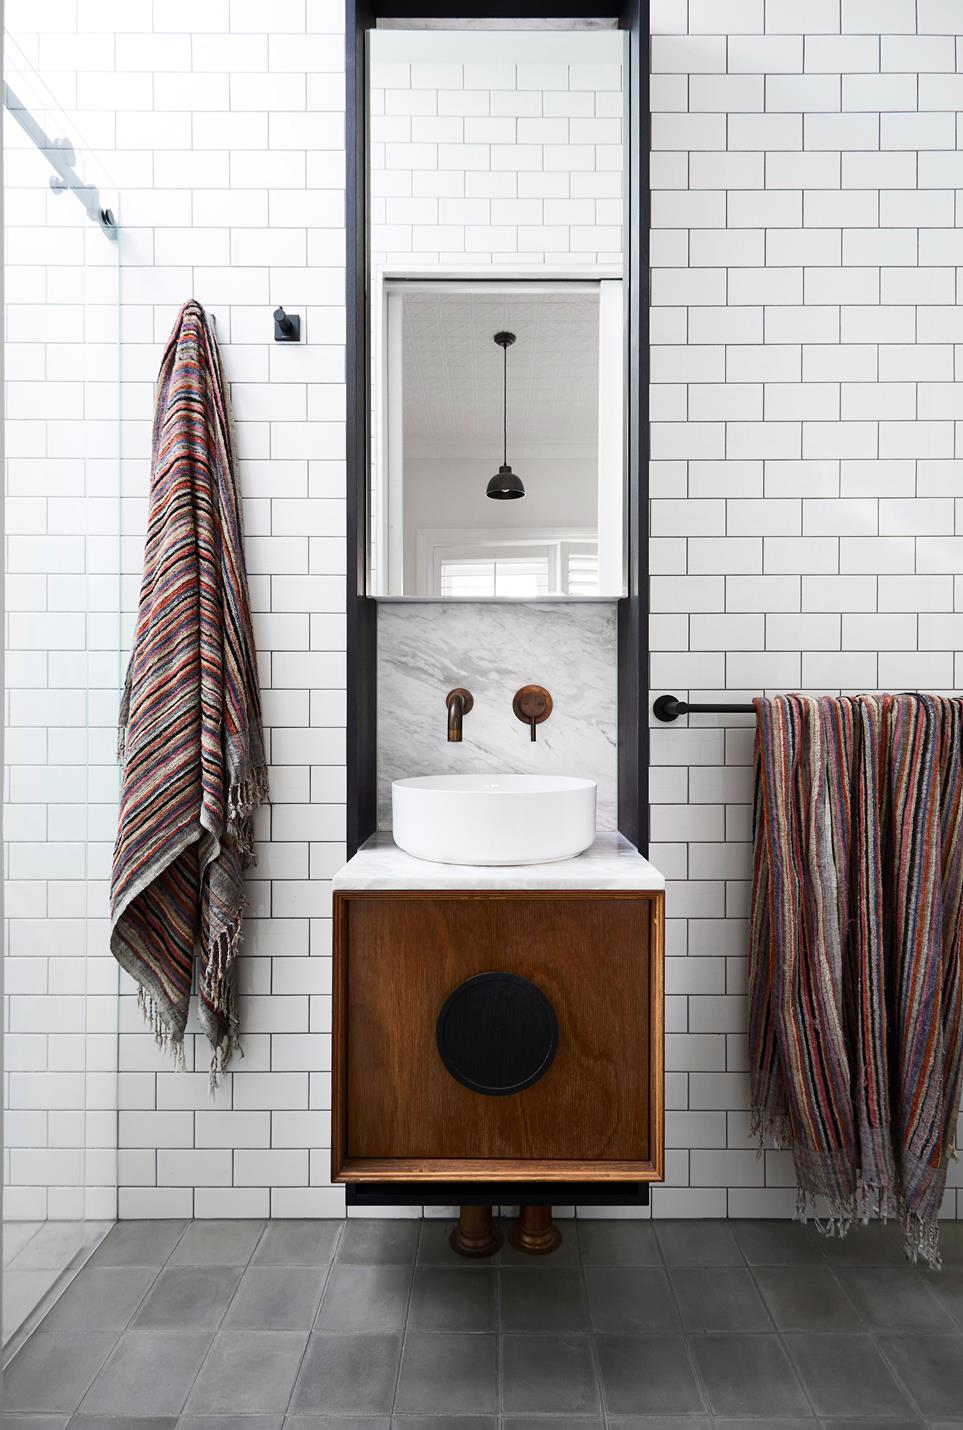 brick like subway tile walls narrow bathroom vanity with marble backsplash sink and wall mirror